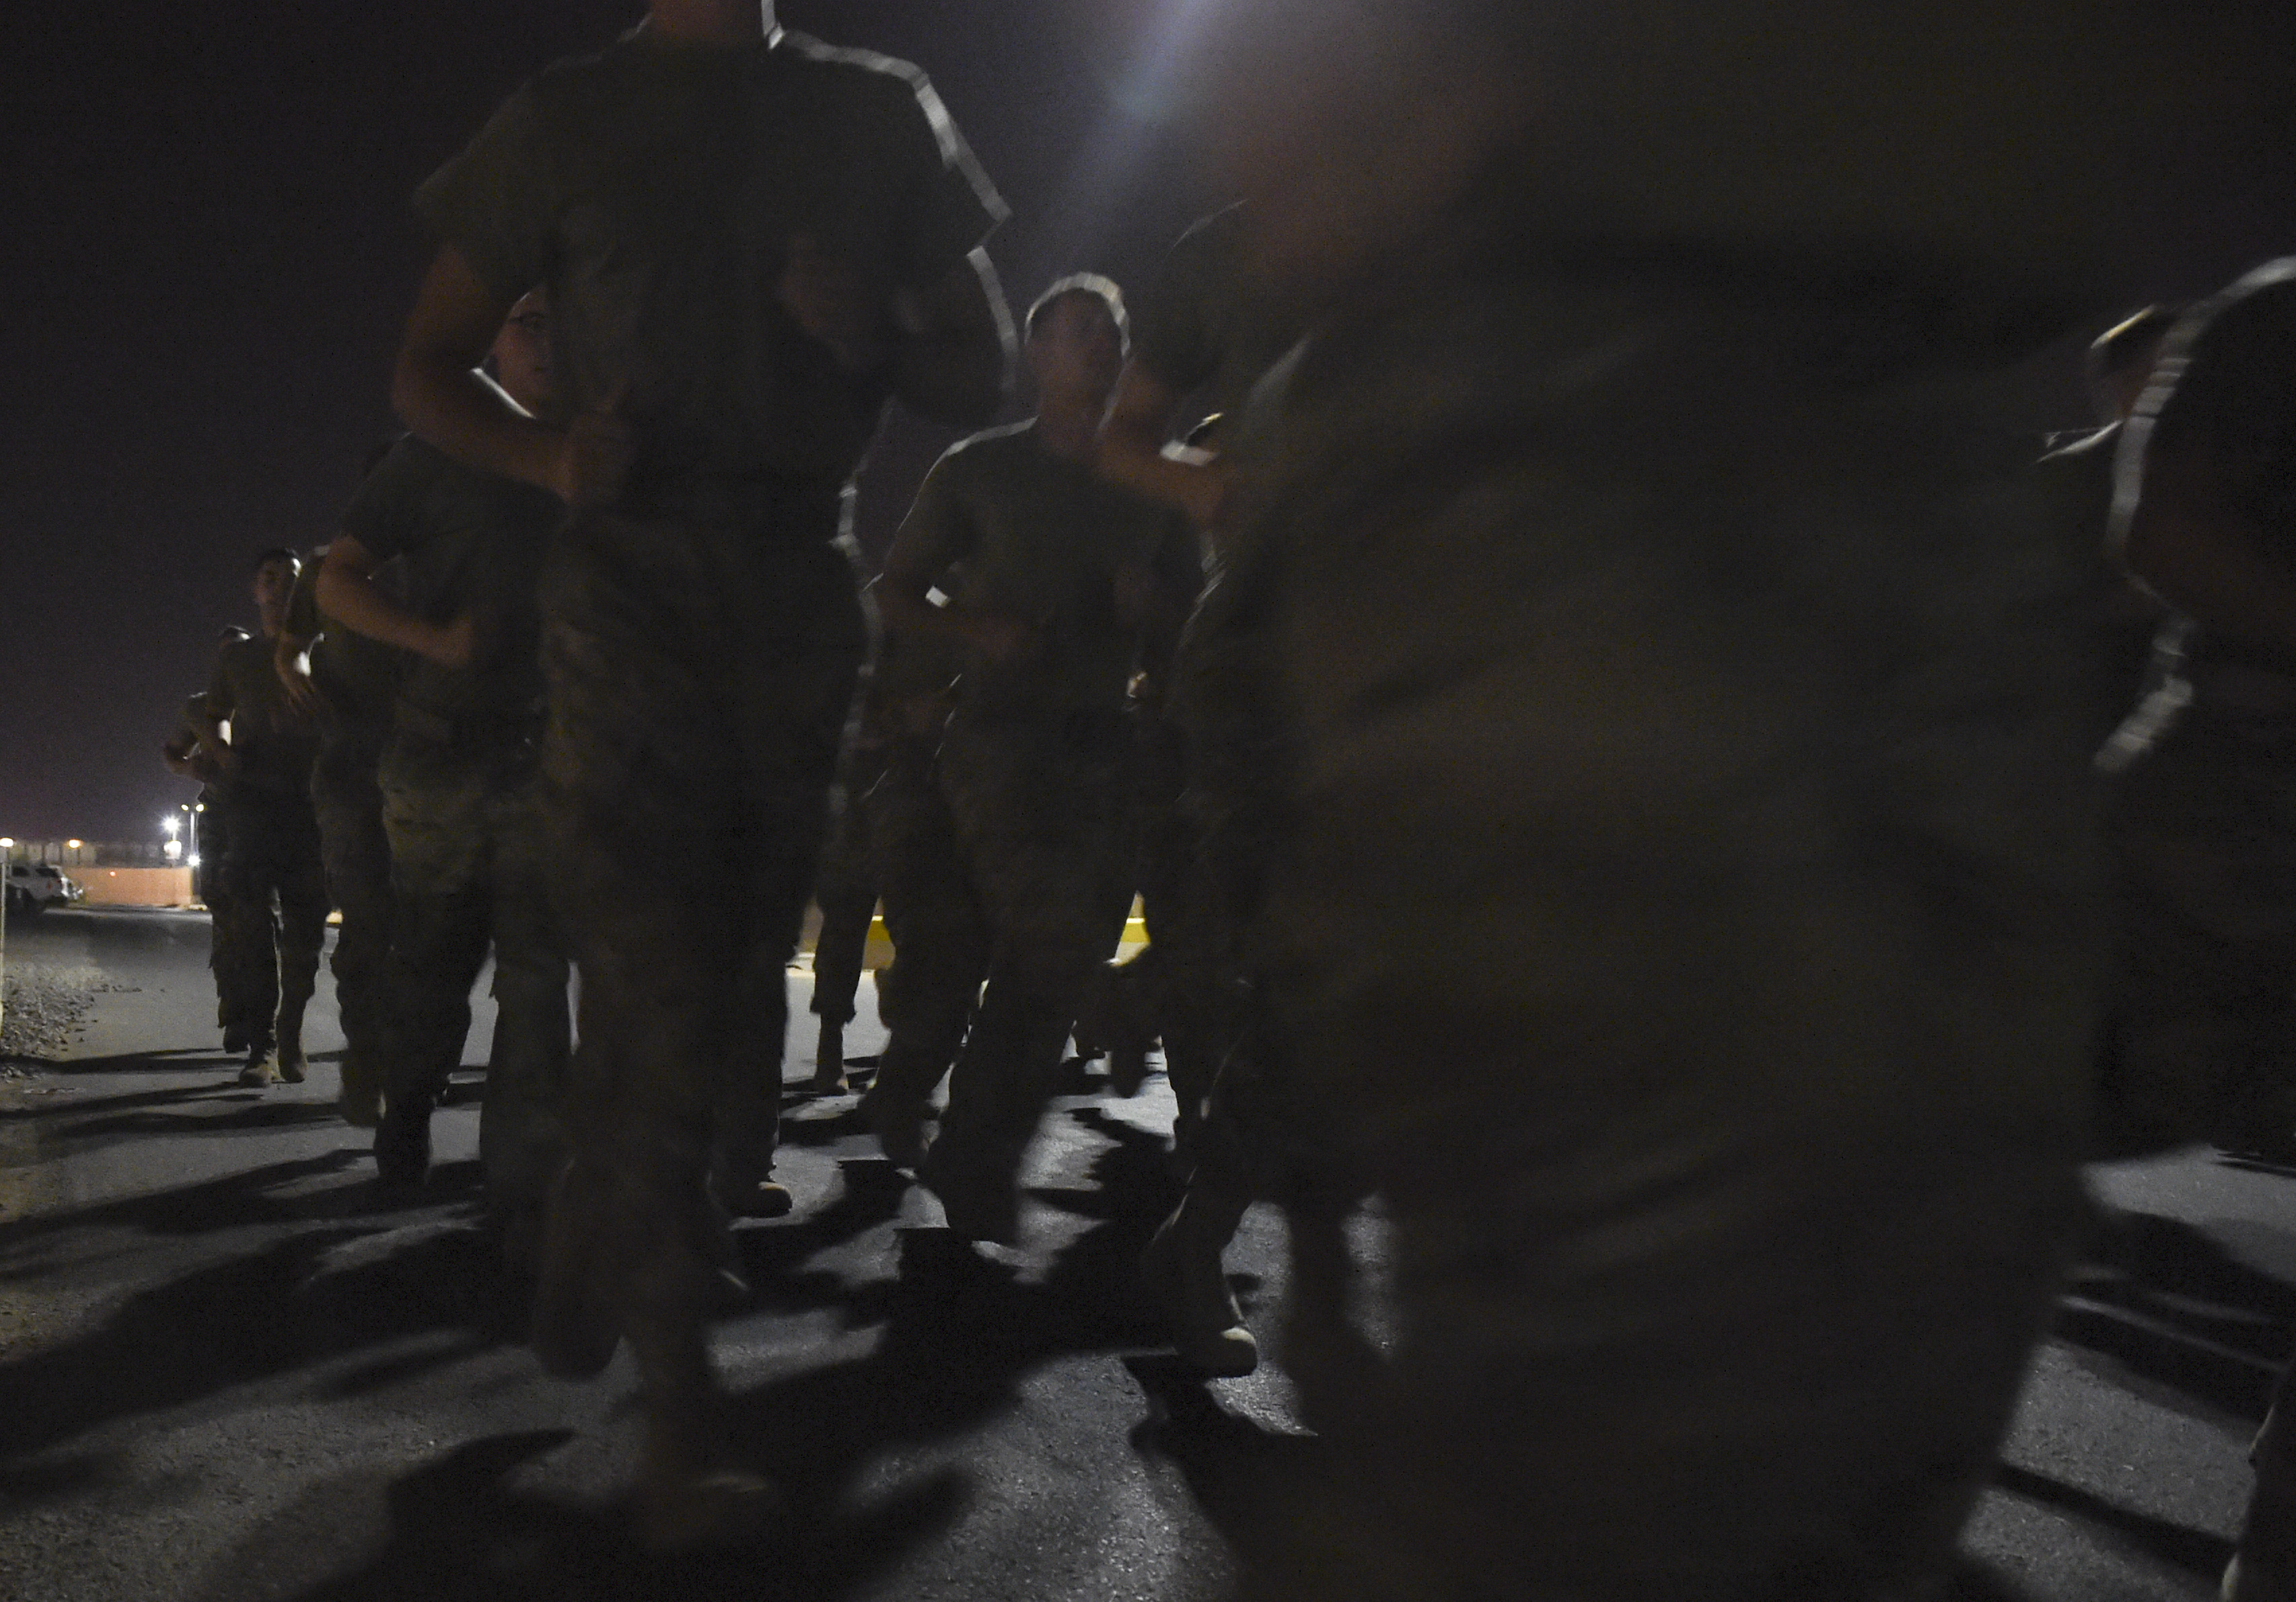 U.S. military members participated in a 5-mile run during a physical training test at Camp Lemonnier, Djibouti, Aug. 5, 2017. The test was in preparation for an upcoming multi-day French Desert Commando Course that will challenge participants physically and mentally through land and water obstacles, combat scenarios and extreme endurance exercises while surviving in austere field conditions. (U.S. Air Force photo by Staff Sgt. Eboni Prince)